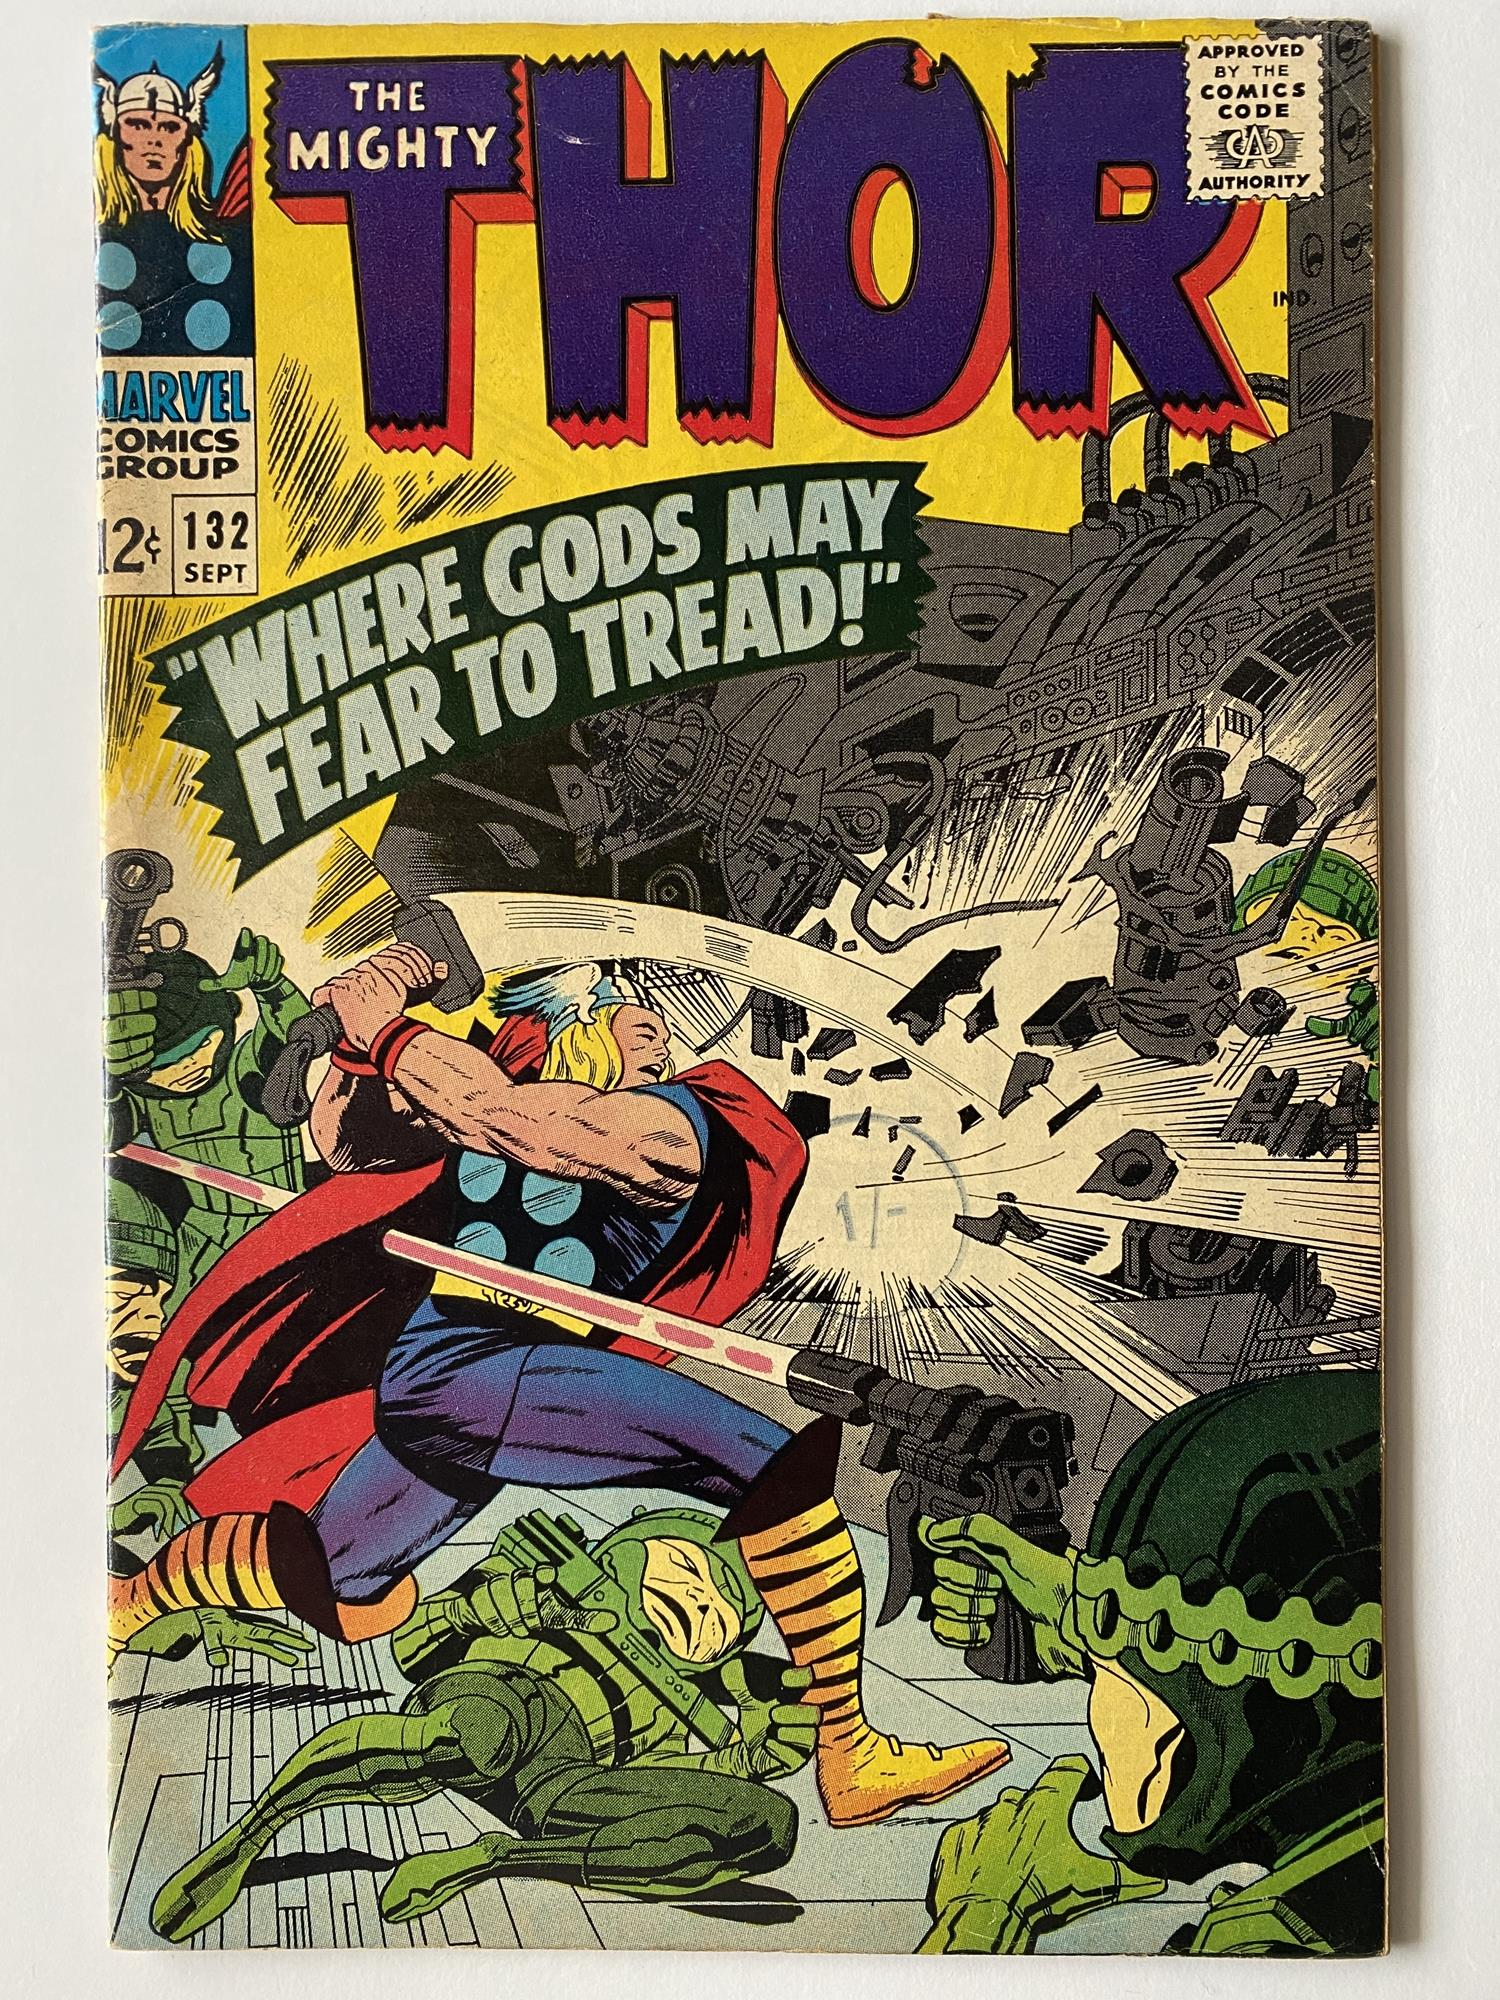 Lot 17 - THOR # 132 (1966 - MARVEL - Cents Copy with Pence Stamp) - First appearance of Ego the Living Planet